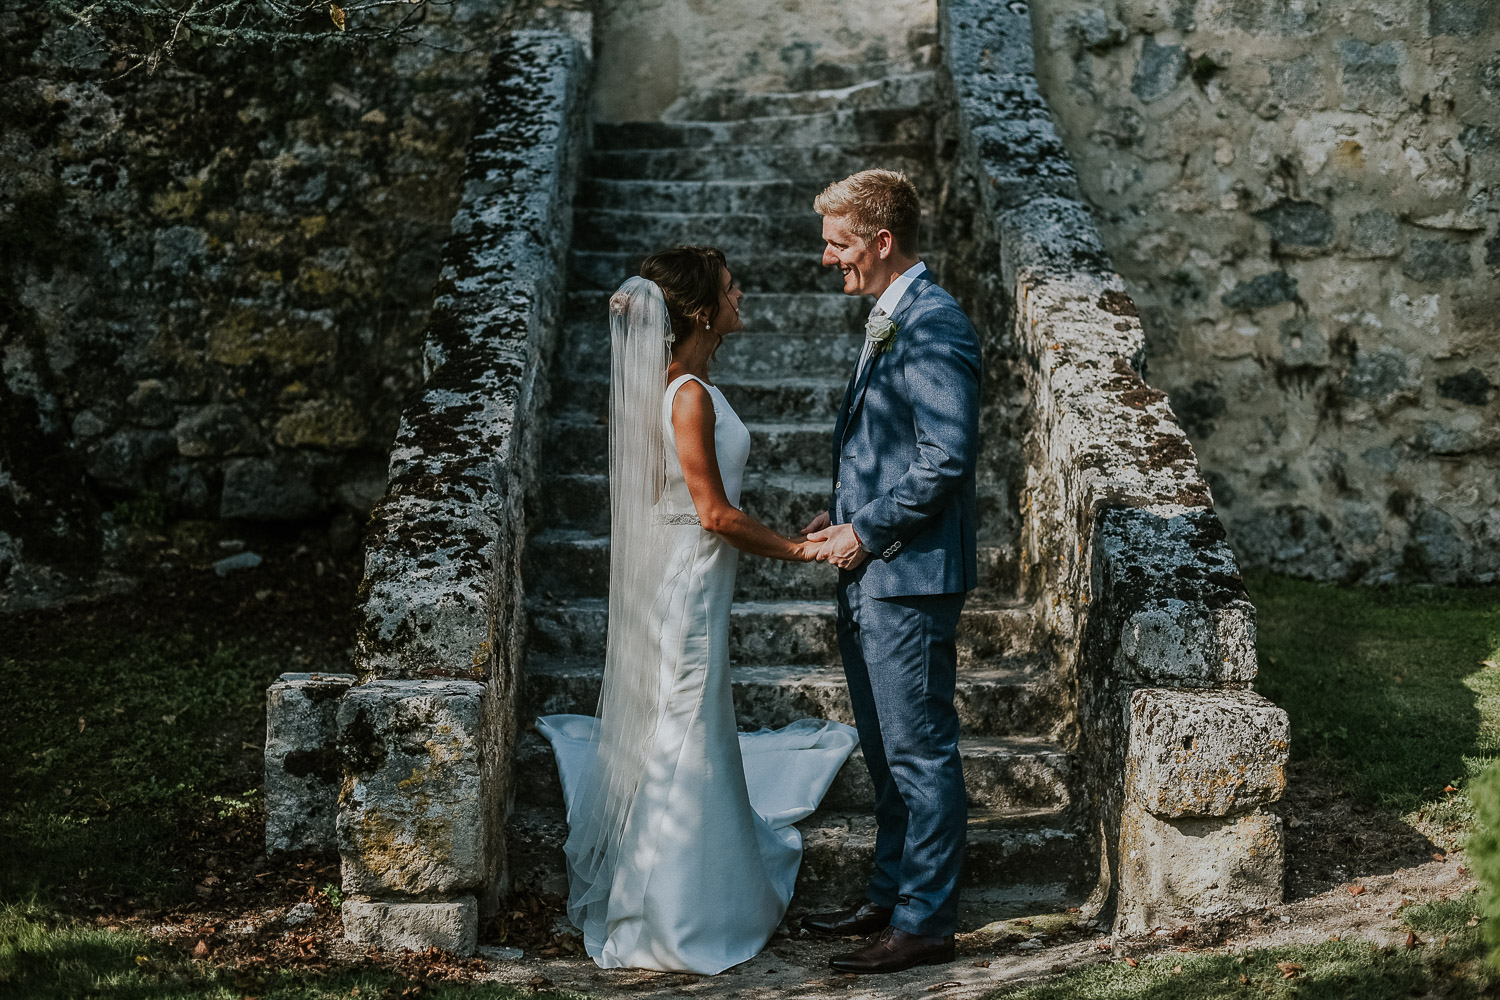 chateau_de_lisse_gers_gascony_south_west_france_family_wedding_katy_webb_photography_UK54